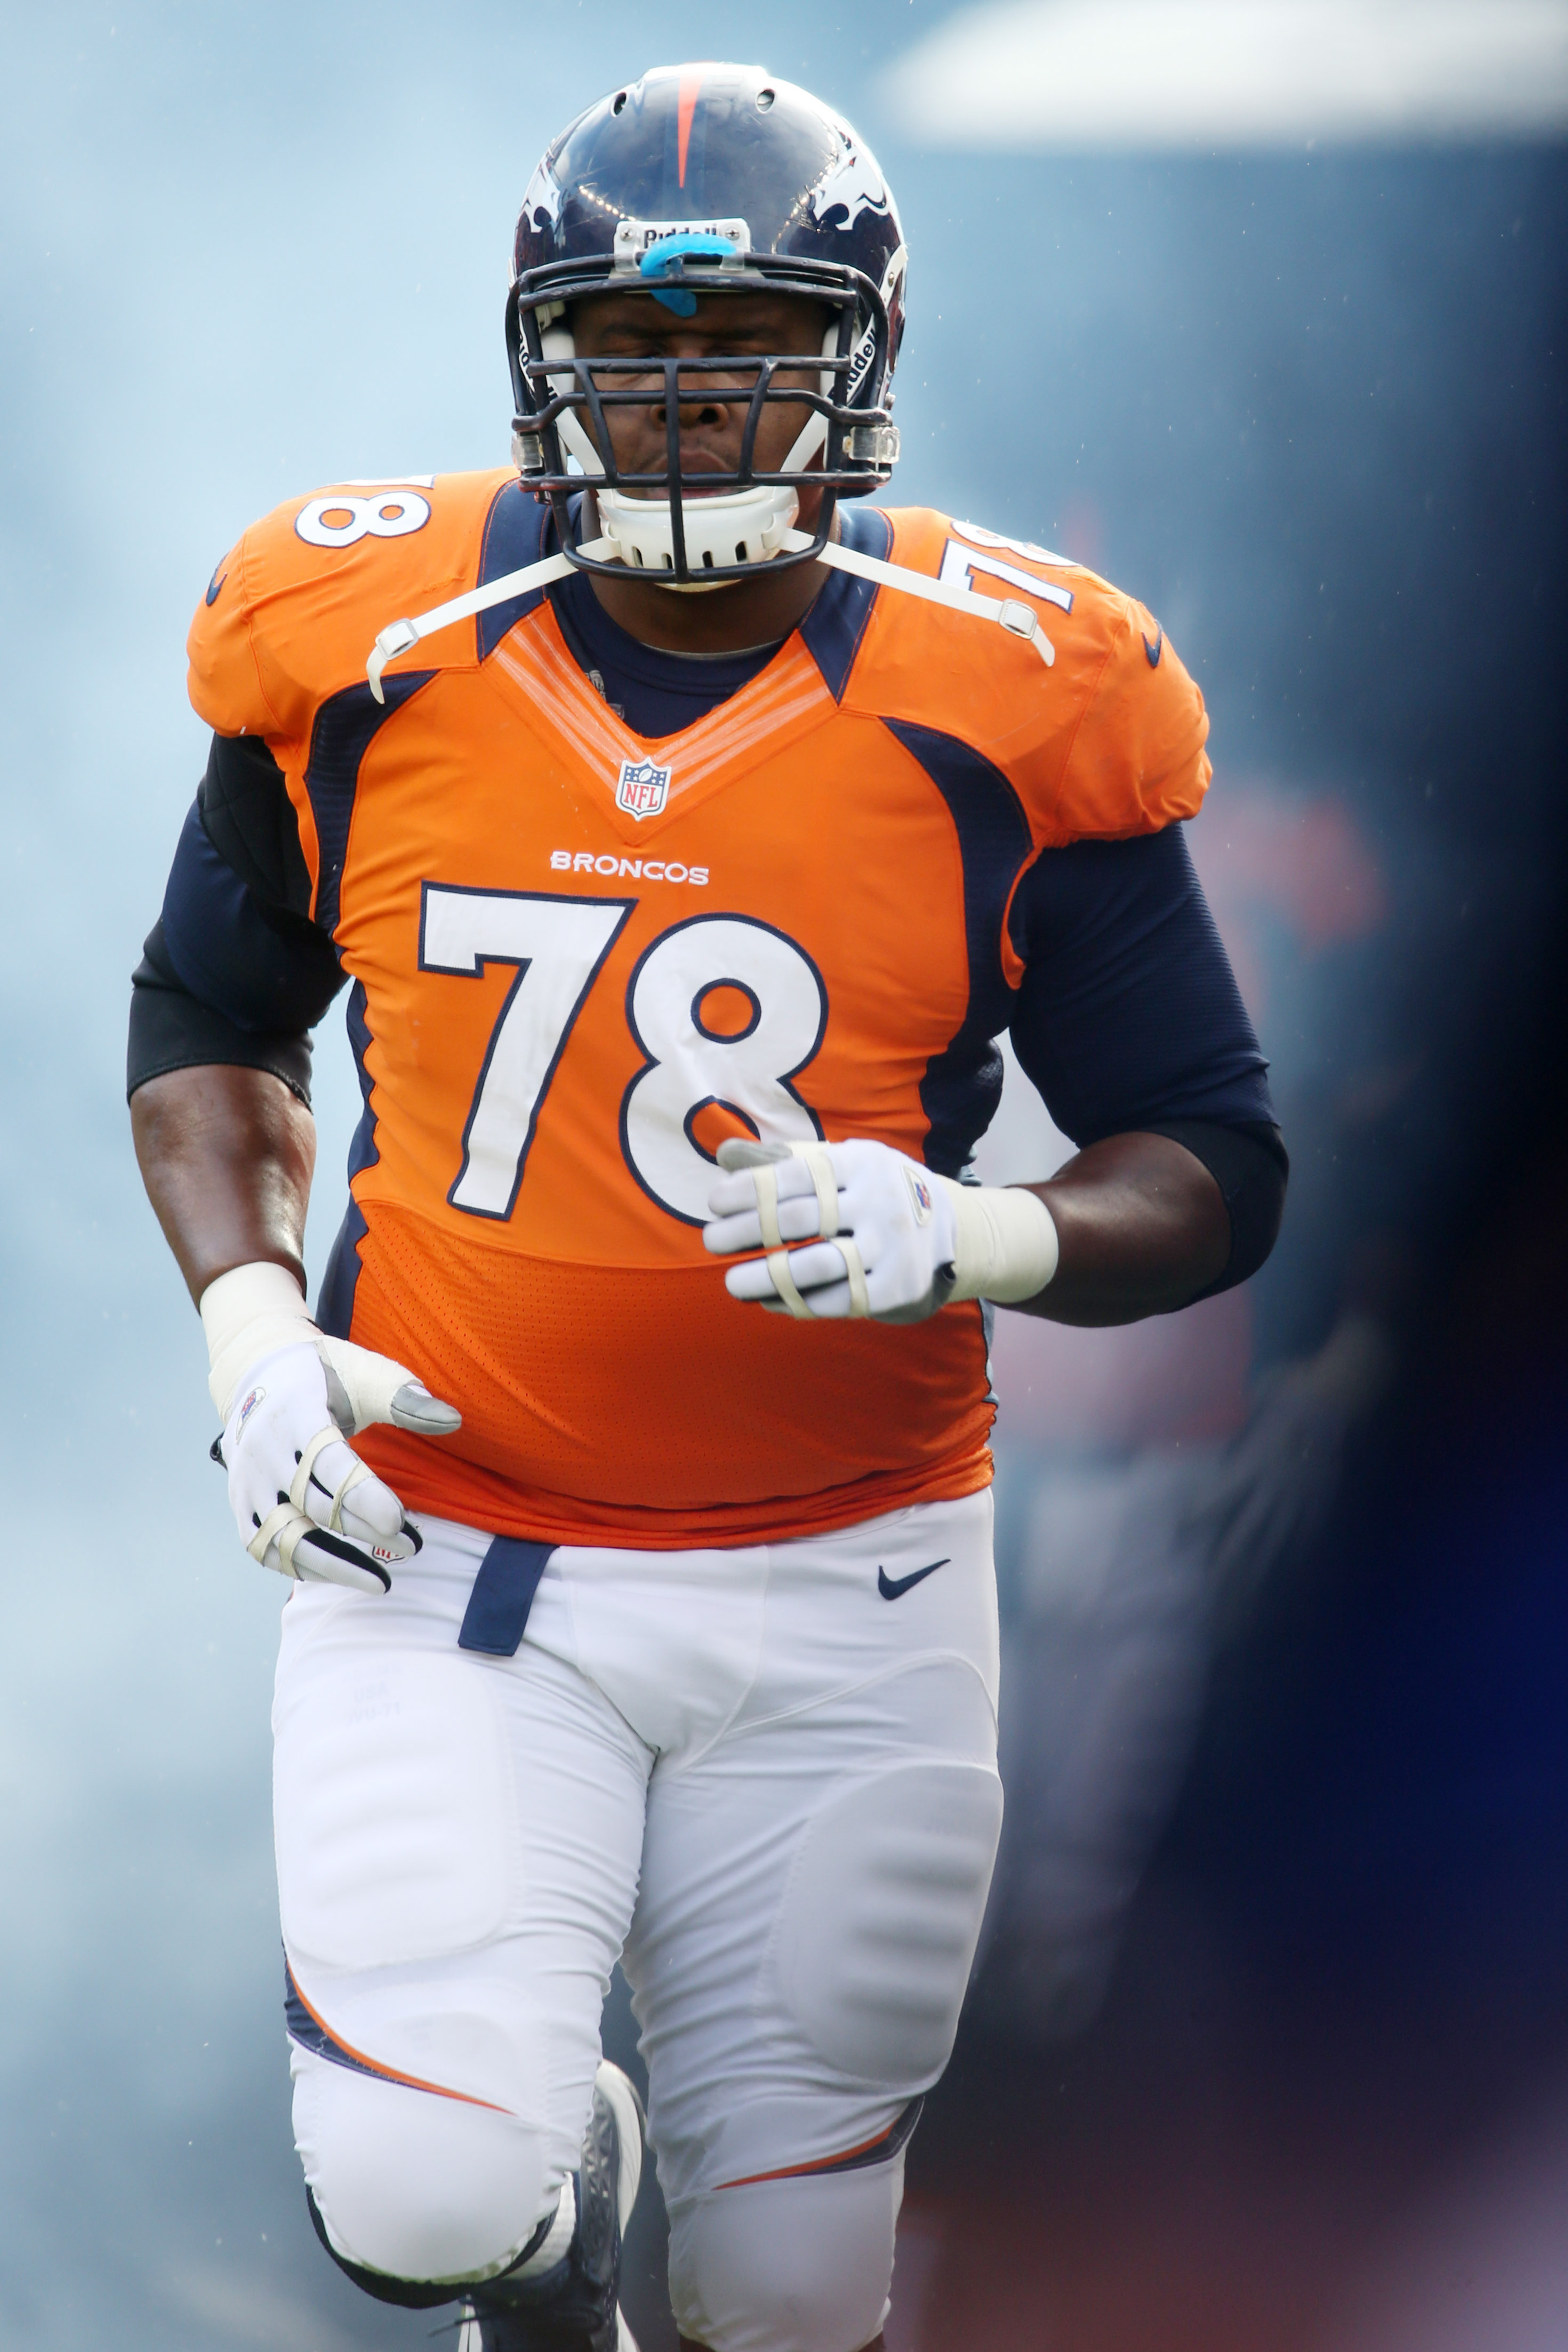 Ryan Clady contract: Broncos expected to make a new offer soon